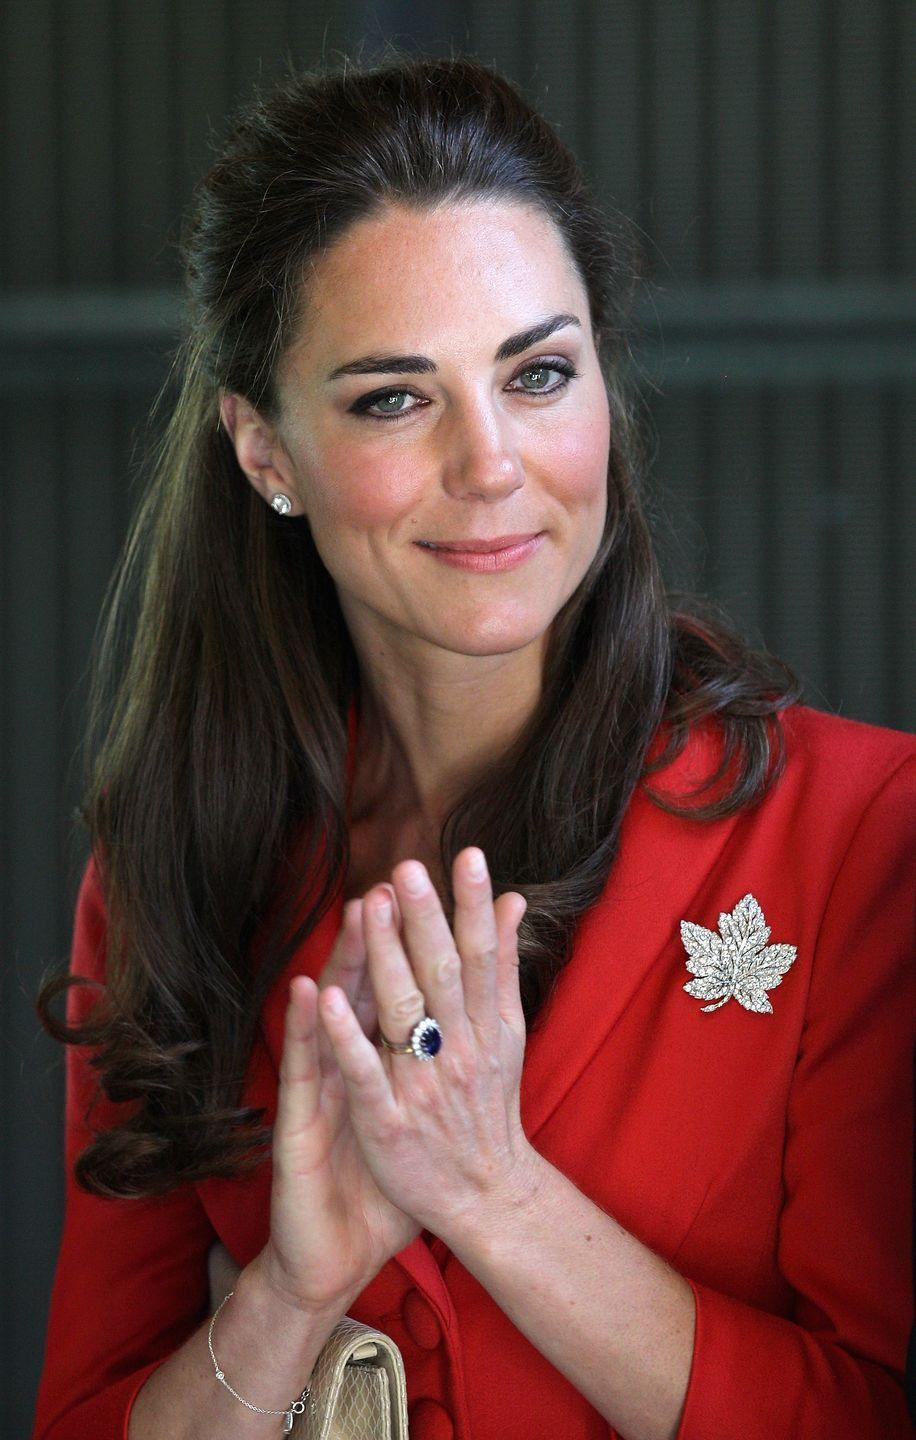 <p>The royals are known to dress diplomatically while visiting other countries. For example, Kate incorporated her trusty diamond maple leaf brooch on a visit to Canada. </p>